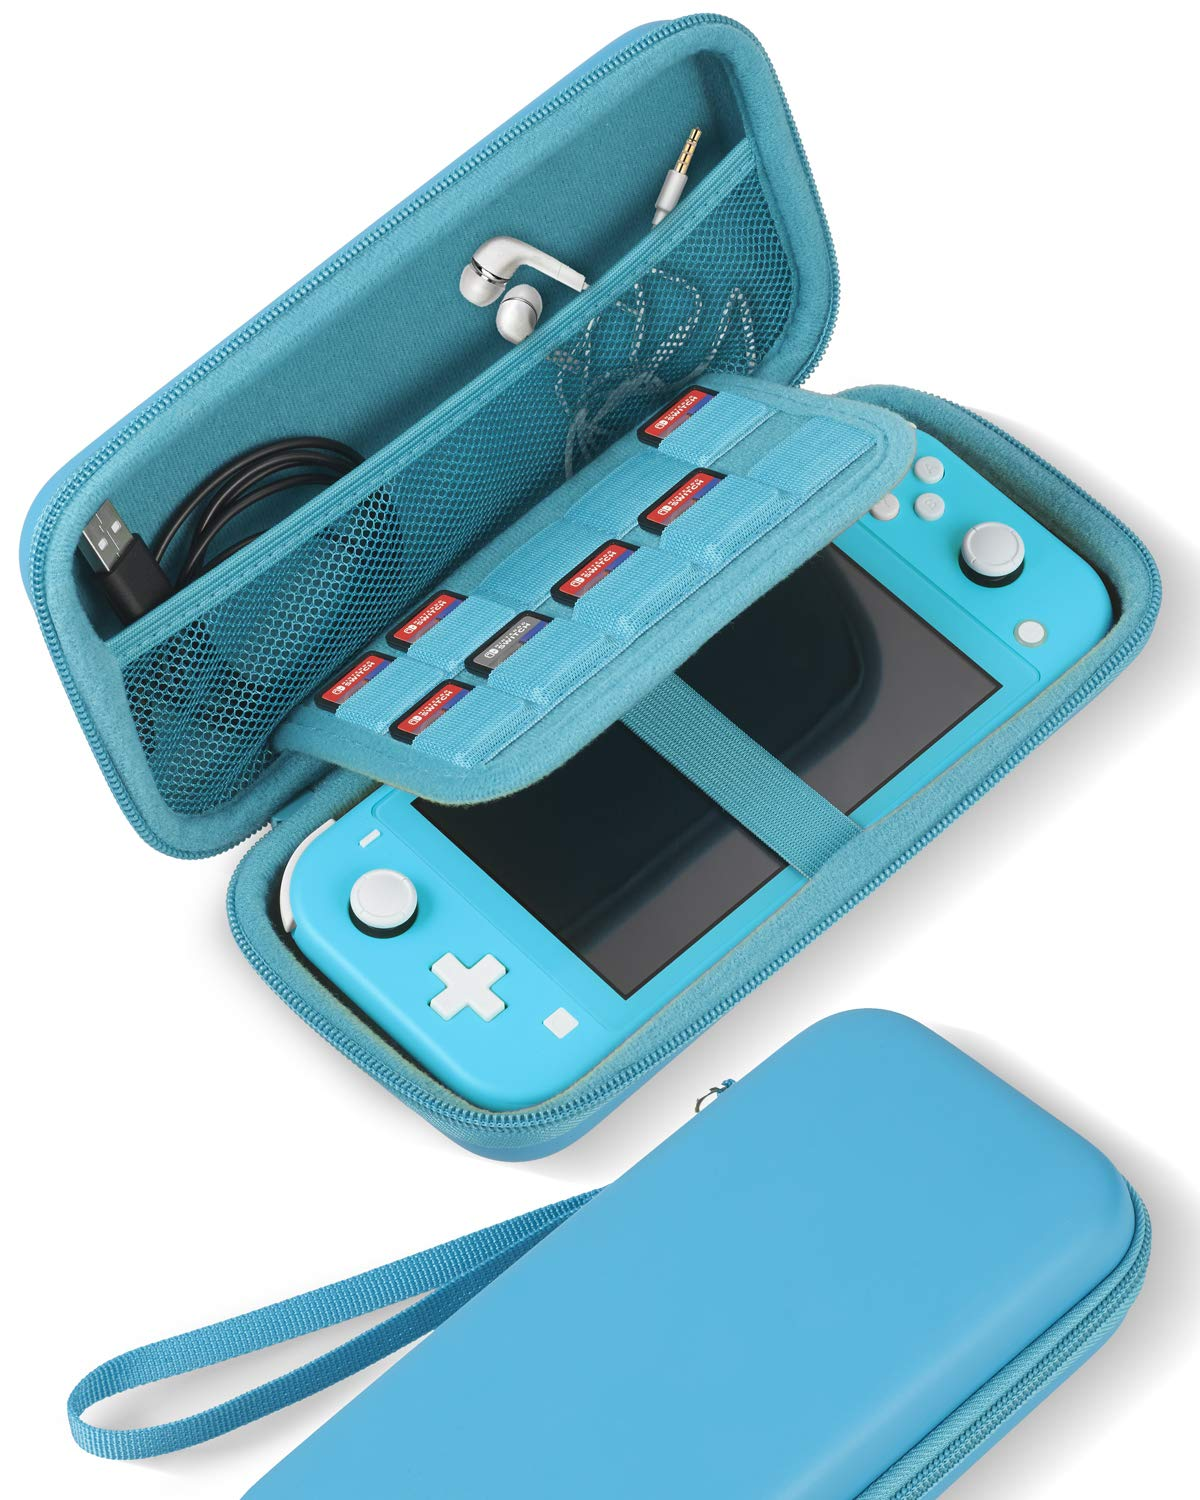 Aboom Slim Travel Carrying Case for Nintendo Switch Lite, Protective Pouch Exterior and Interior are in Same Color with Storage for Switch Lite Games & Accessories (Turquoise)